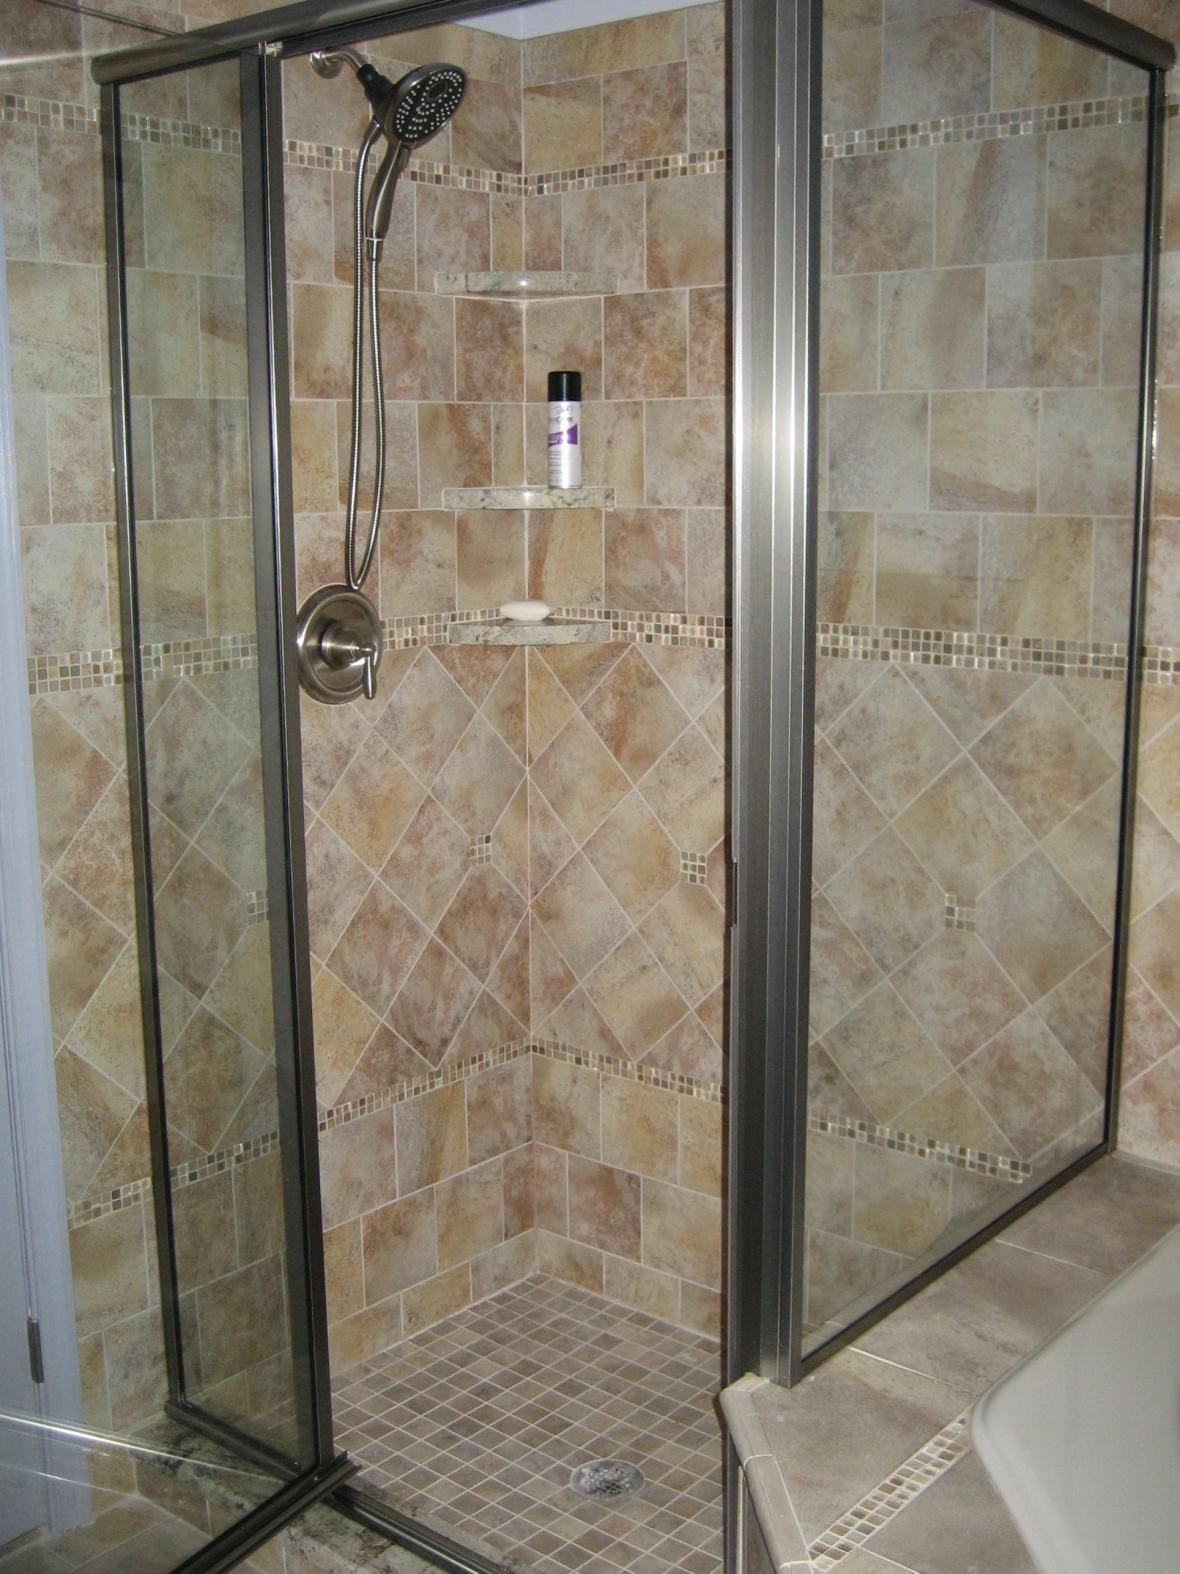 Completed Porcelain Tiled Shower With Marble Corner Shampoo Shelves New Jersey Custom Tile